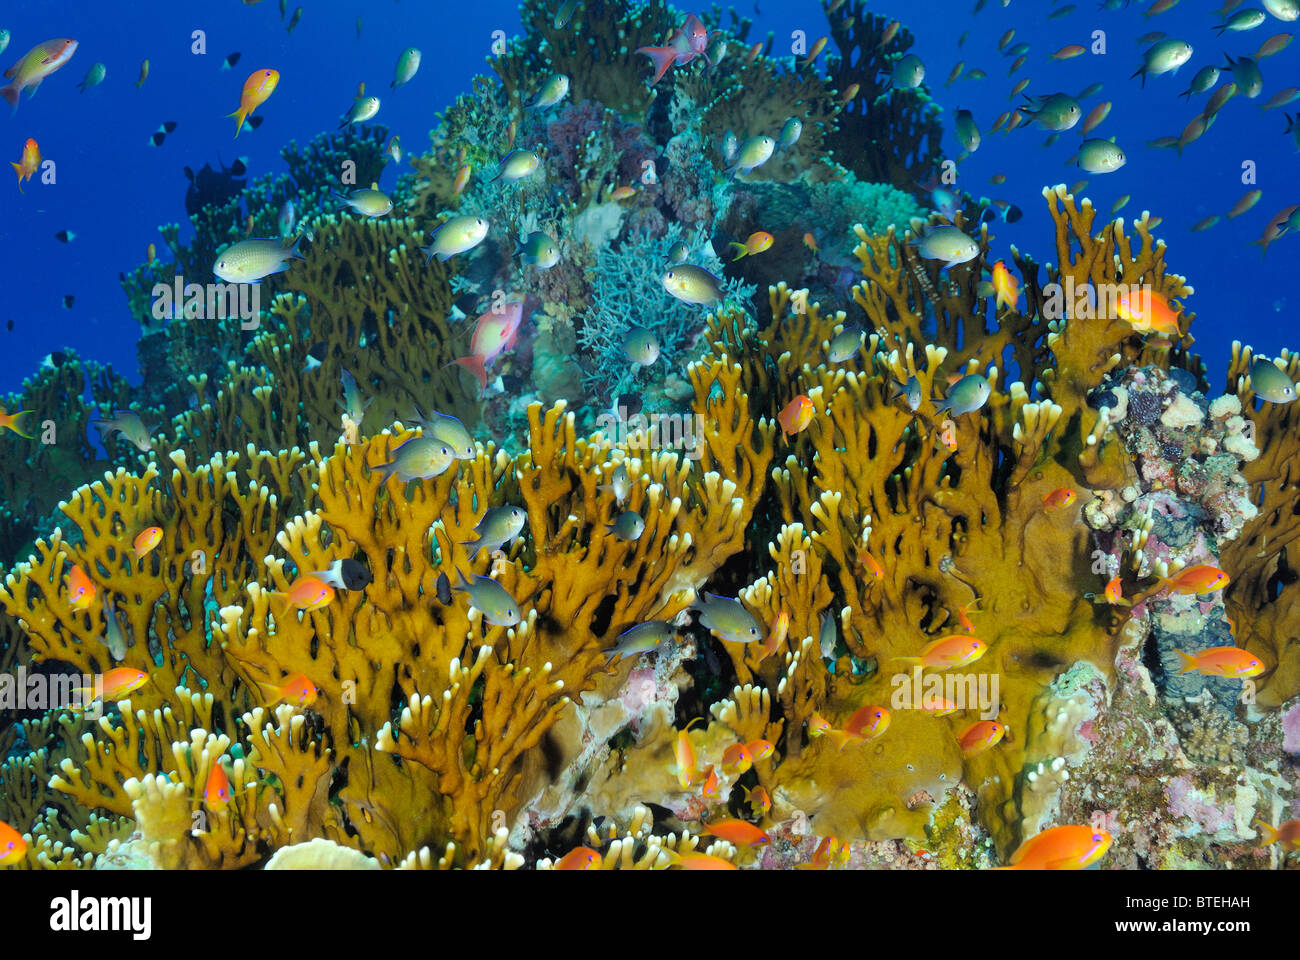 Colony of fire coral growing off Hamata coast, Egypt, Red Sea - Stock Image